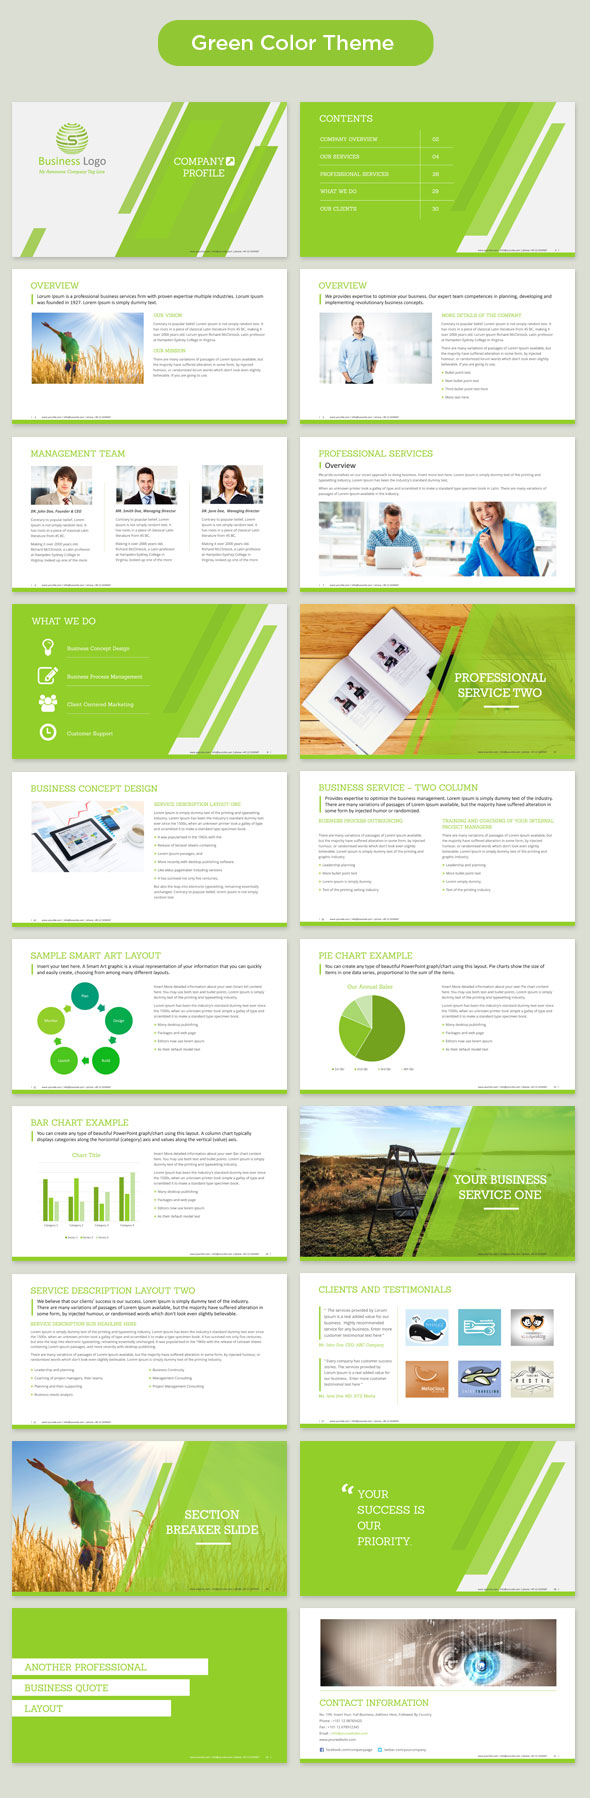 Company profile powerpoint template 350 master ppt slide templates corporate profile powerpoint template green friedricerecipe Choice Image